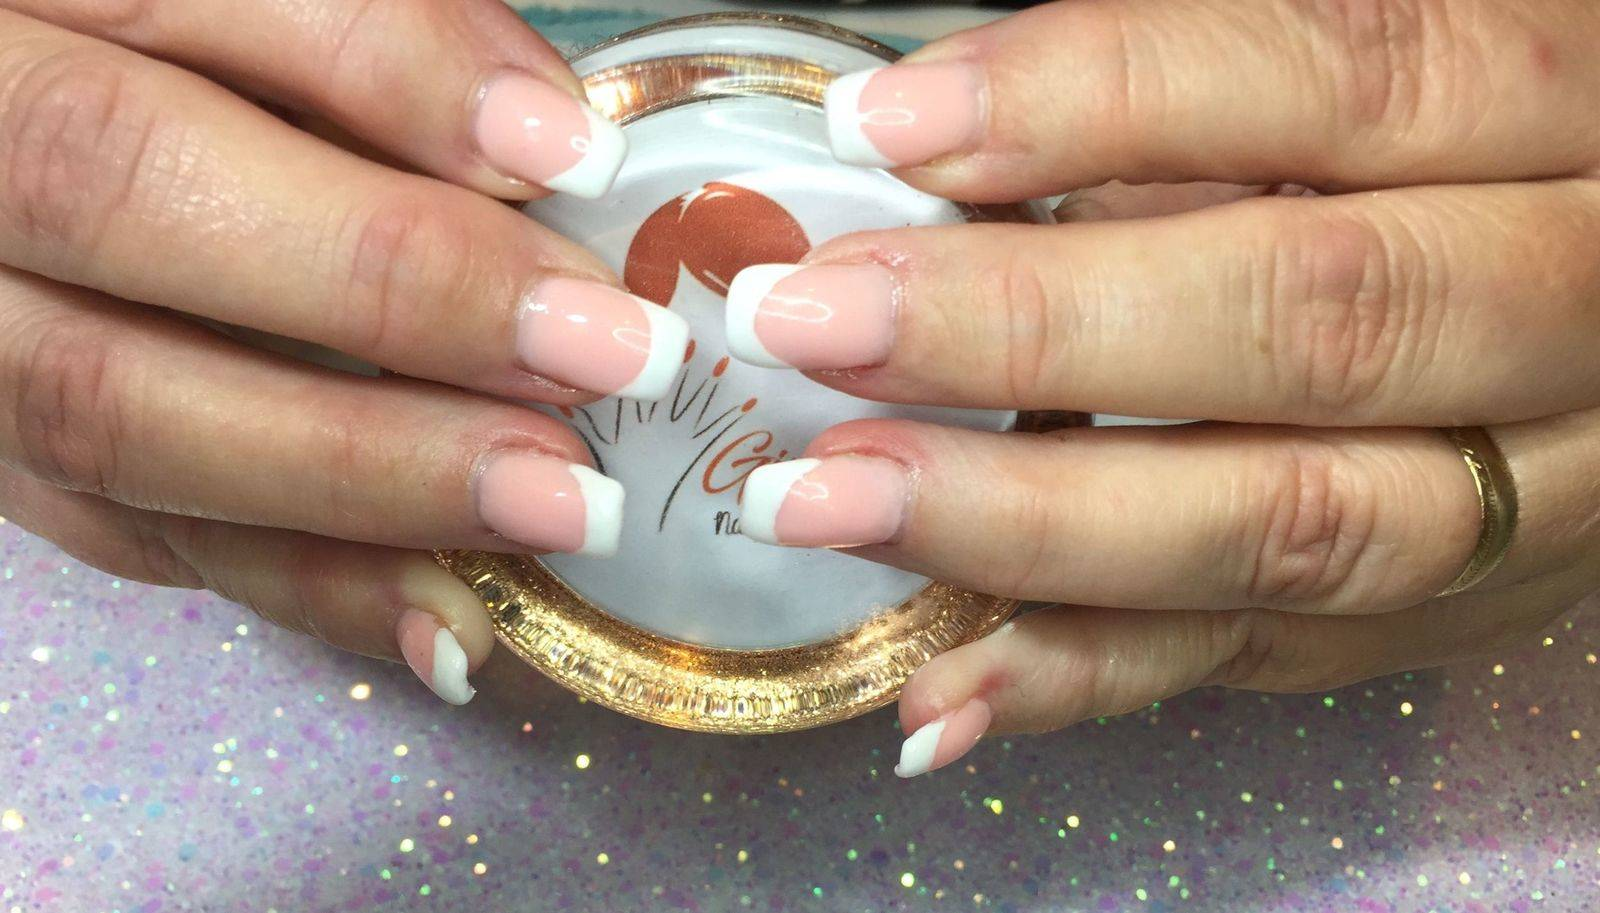 French using builder gel with Daisy from The Gel Bottle Inc